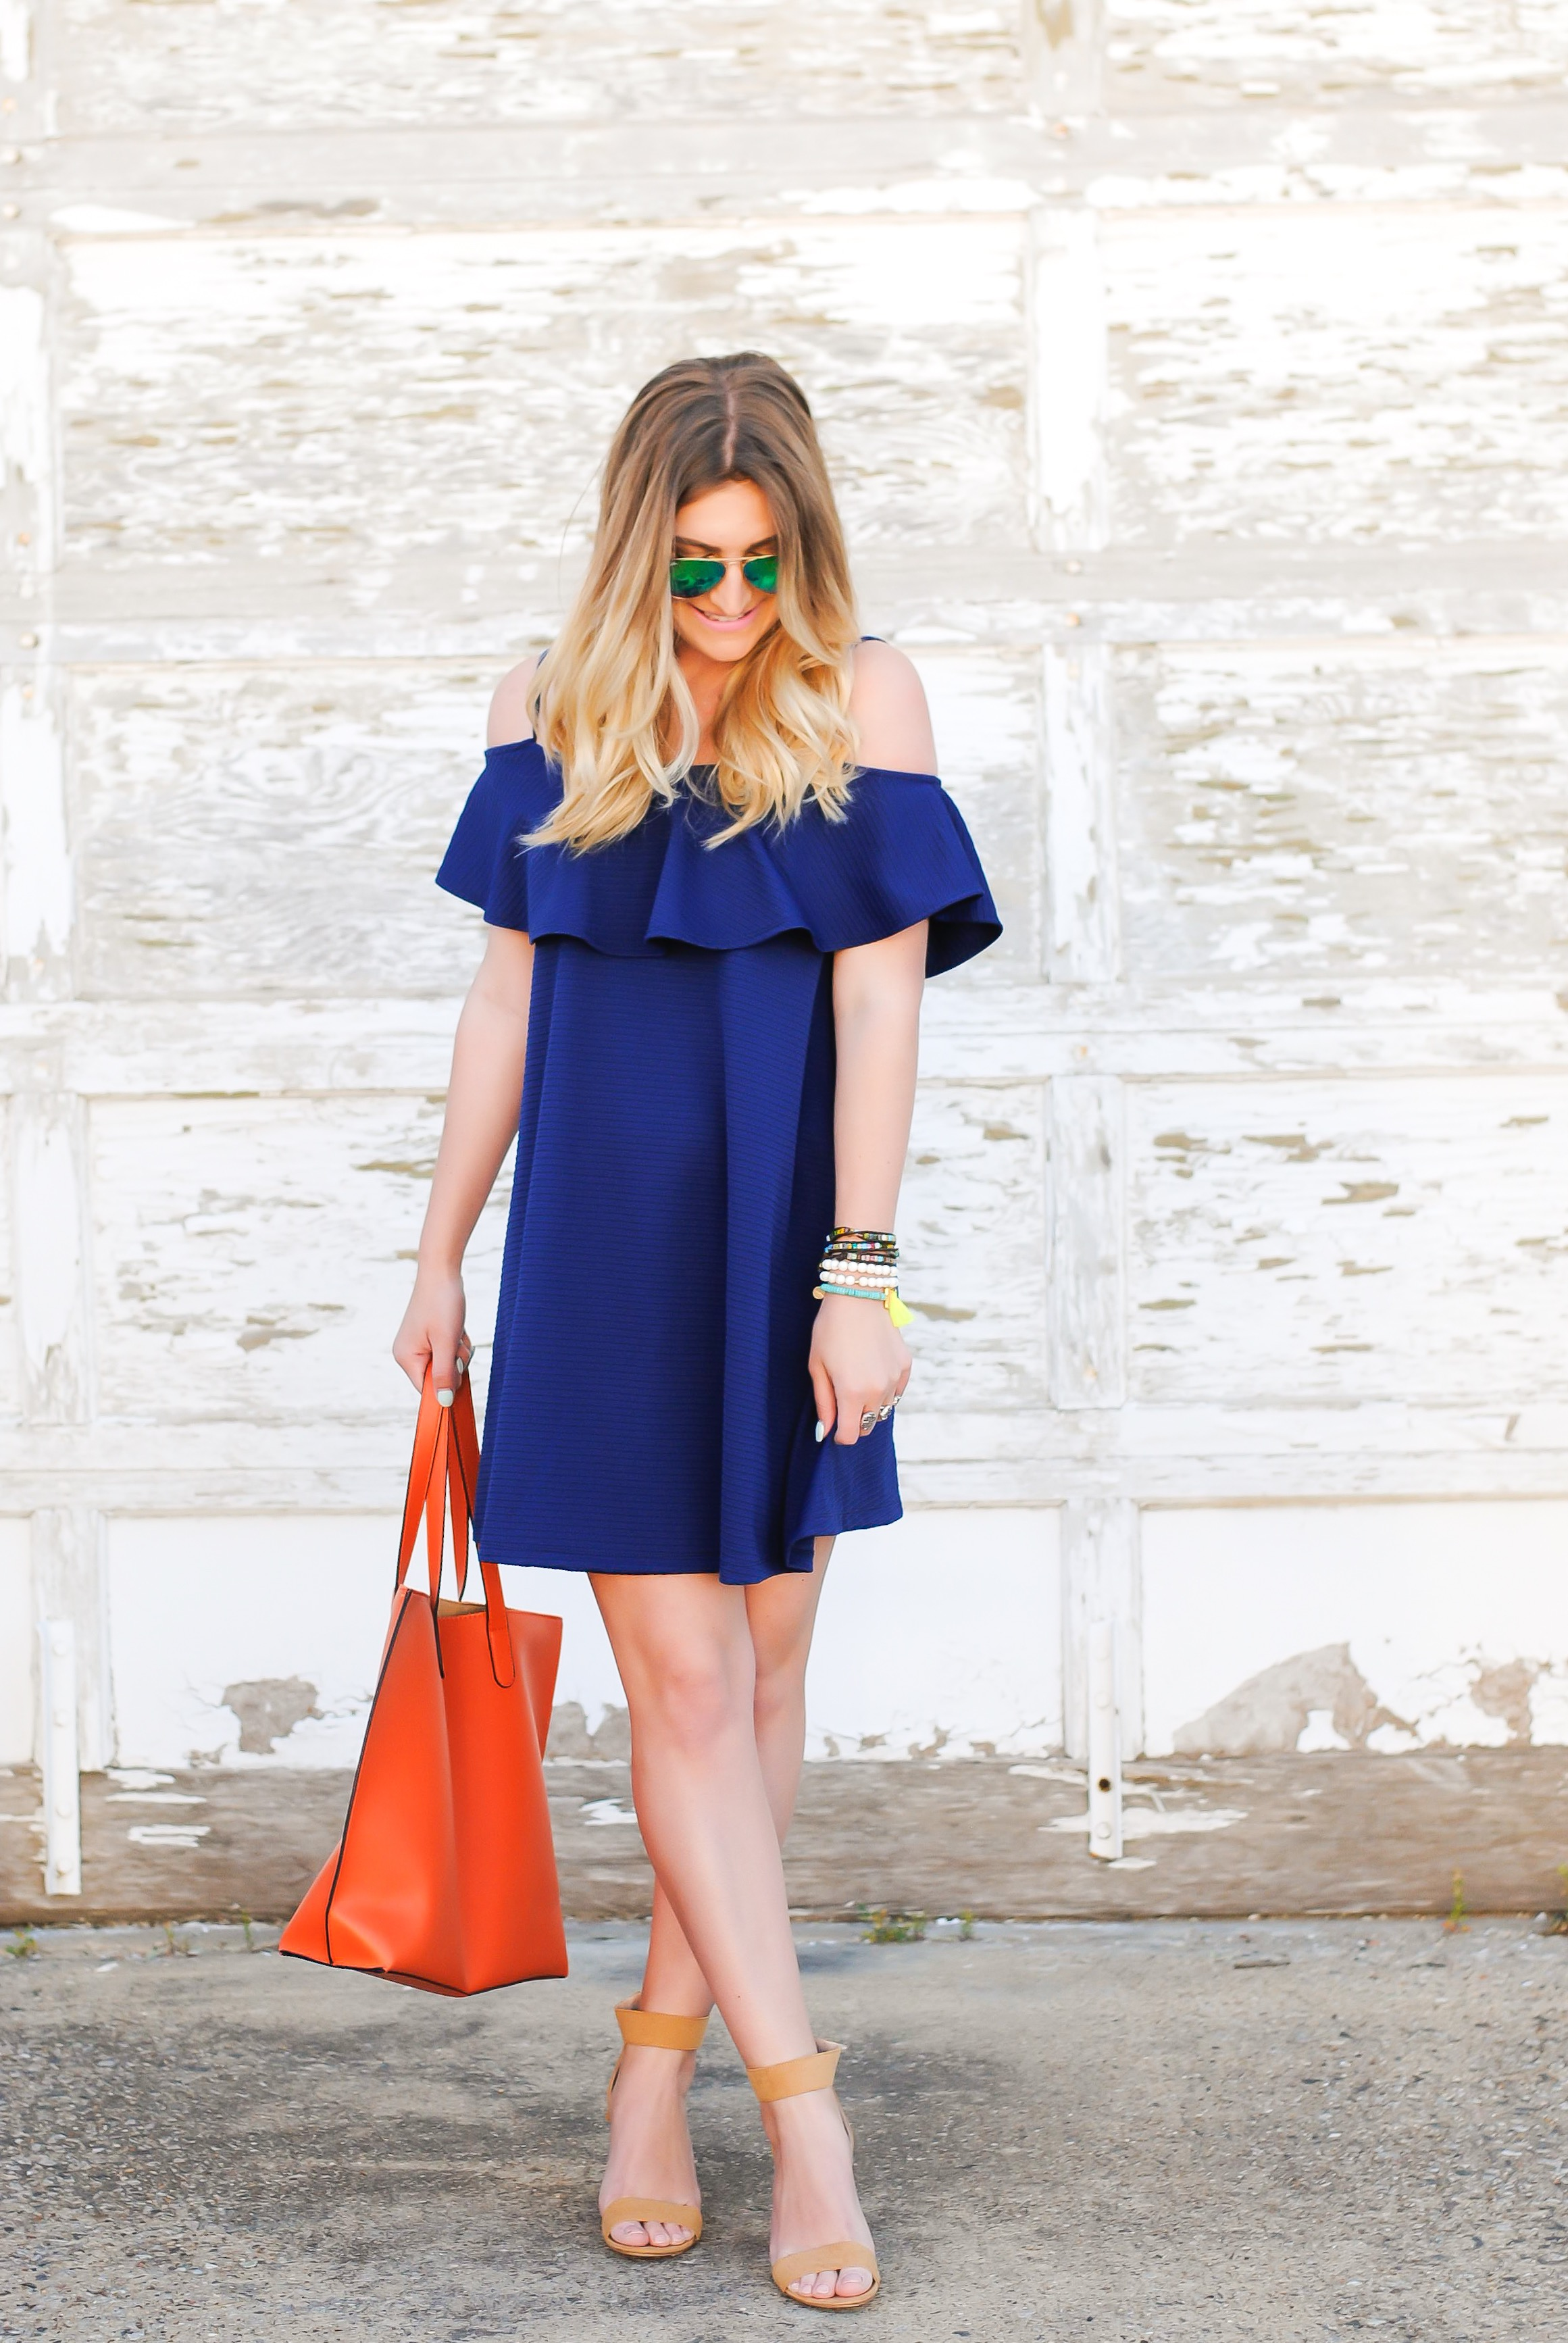 full body outfit in blue with an orange bag